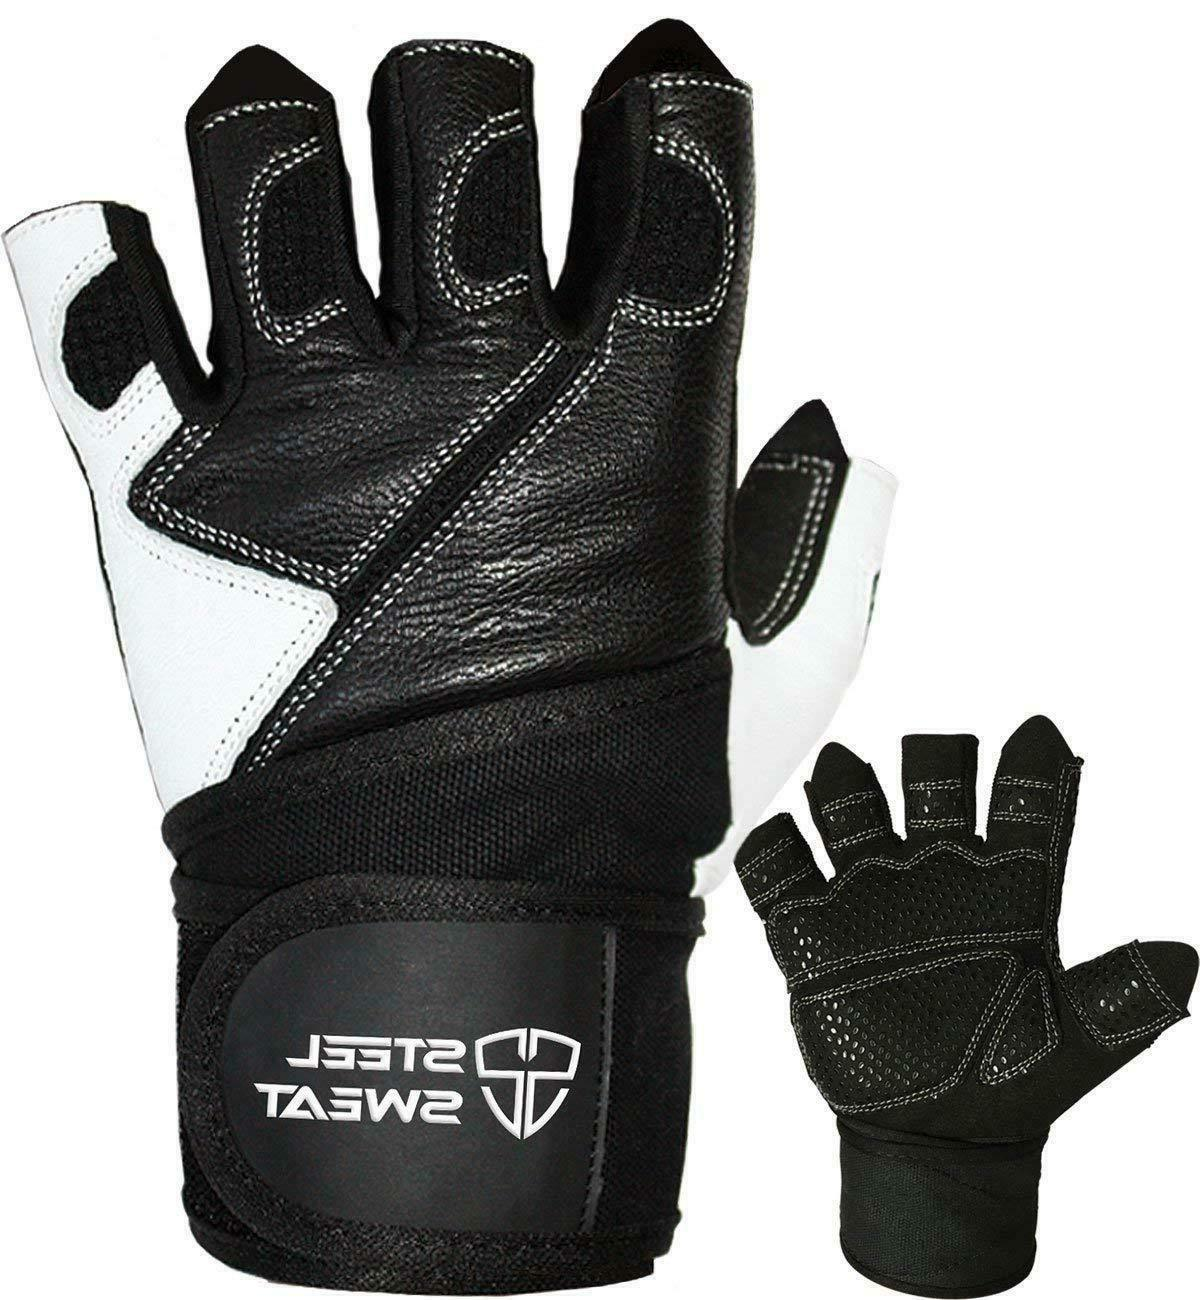 weightlifting gloves for workout gym and fitness